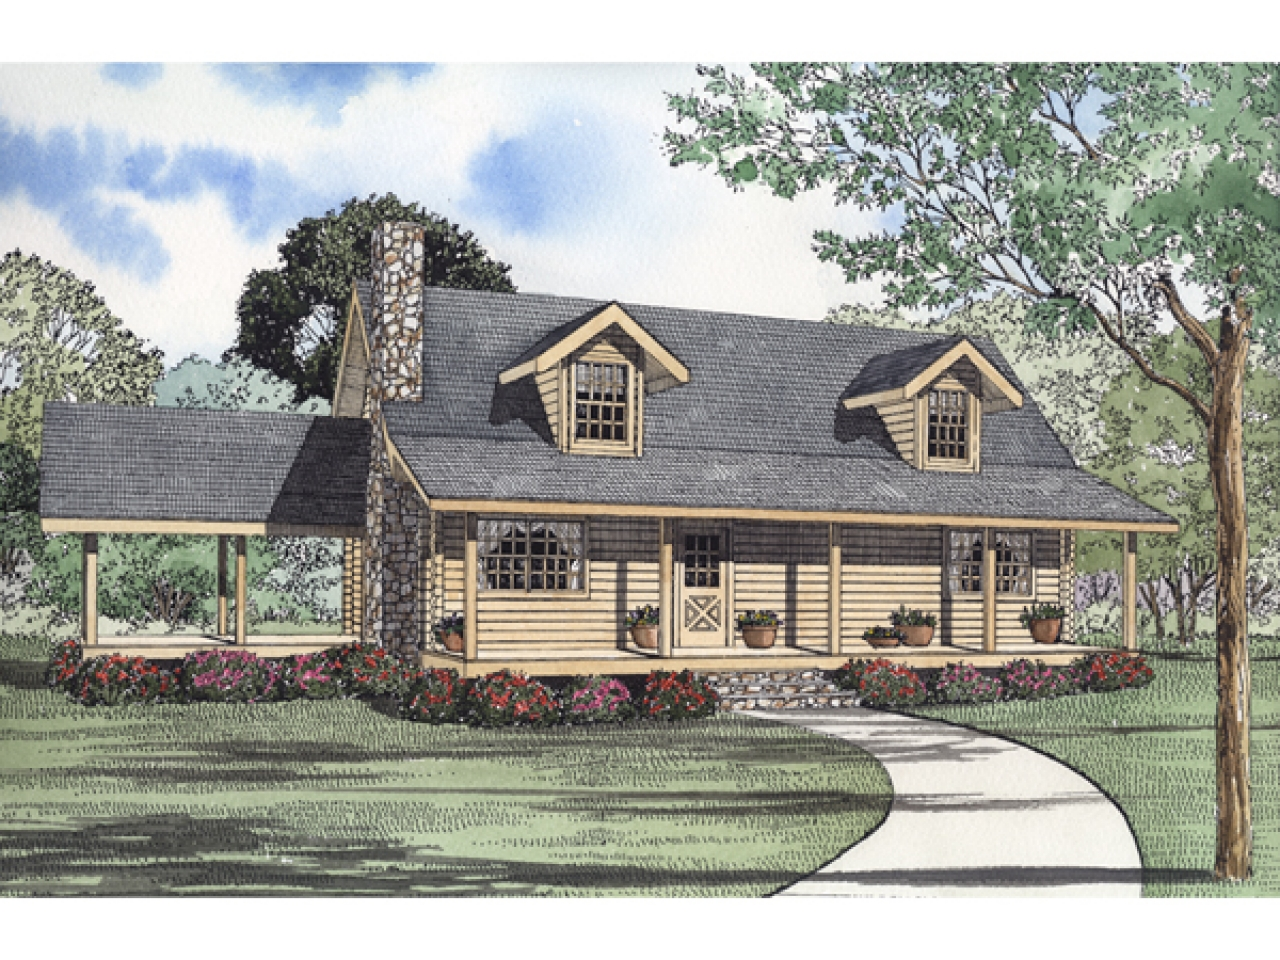 Heiden country log home plan 073d 0027 house plans and for River home plans